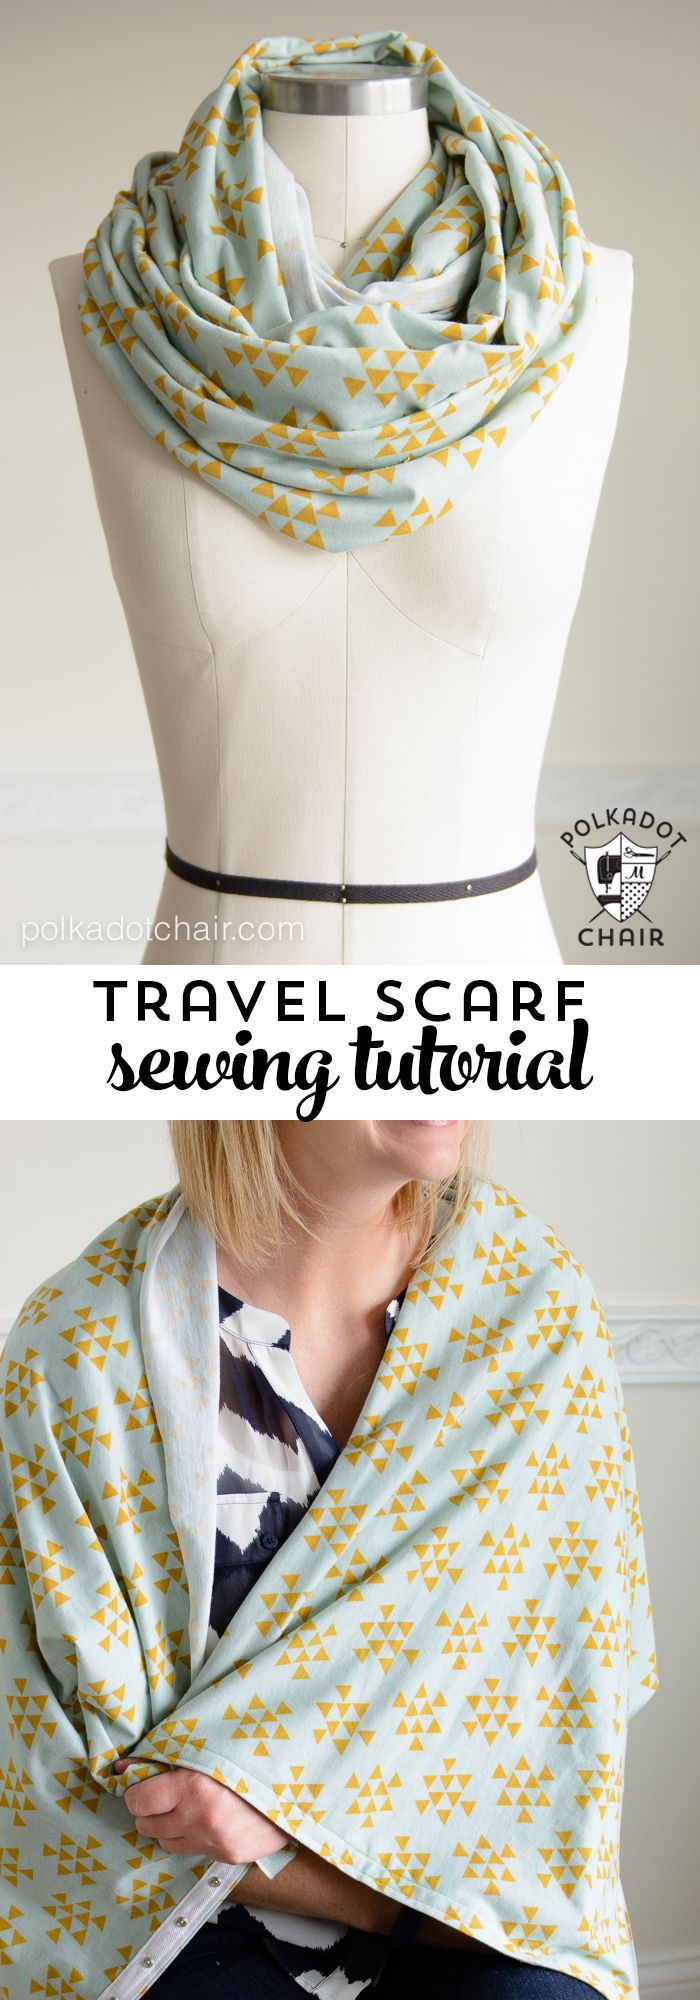 Infinity Travel Scarf Sewing Tutorial on Polka Dot Chair Blog ...